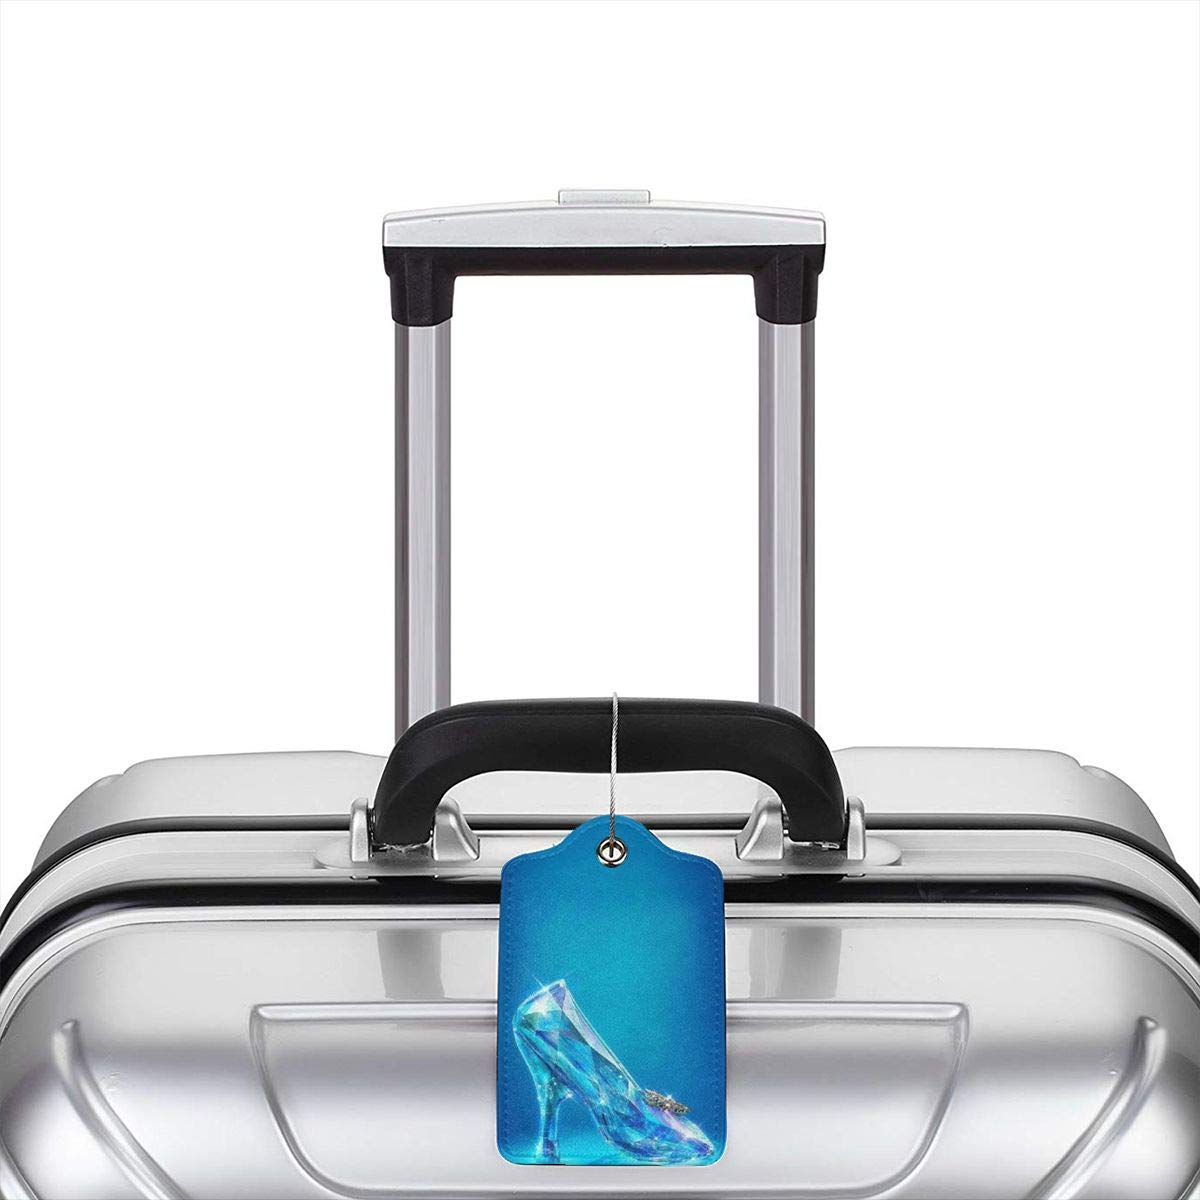 Fashion Cinderellas Crystal Shoes Soft Leather Luggage Tags With Privacy Cover 1-4 Pcs Choose Suit For Travel,Vacation